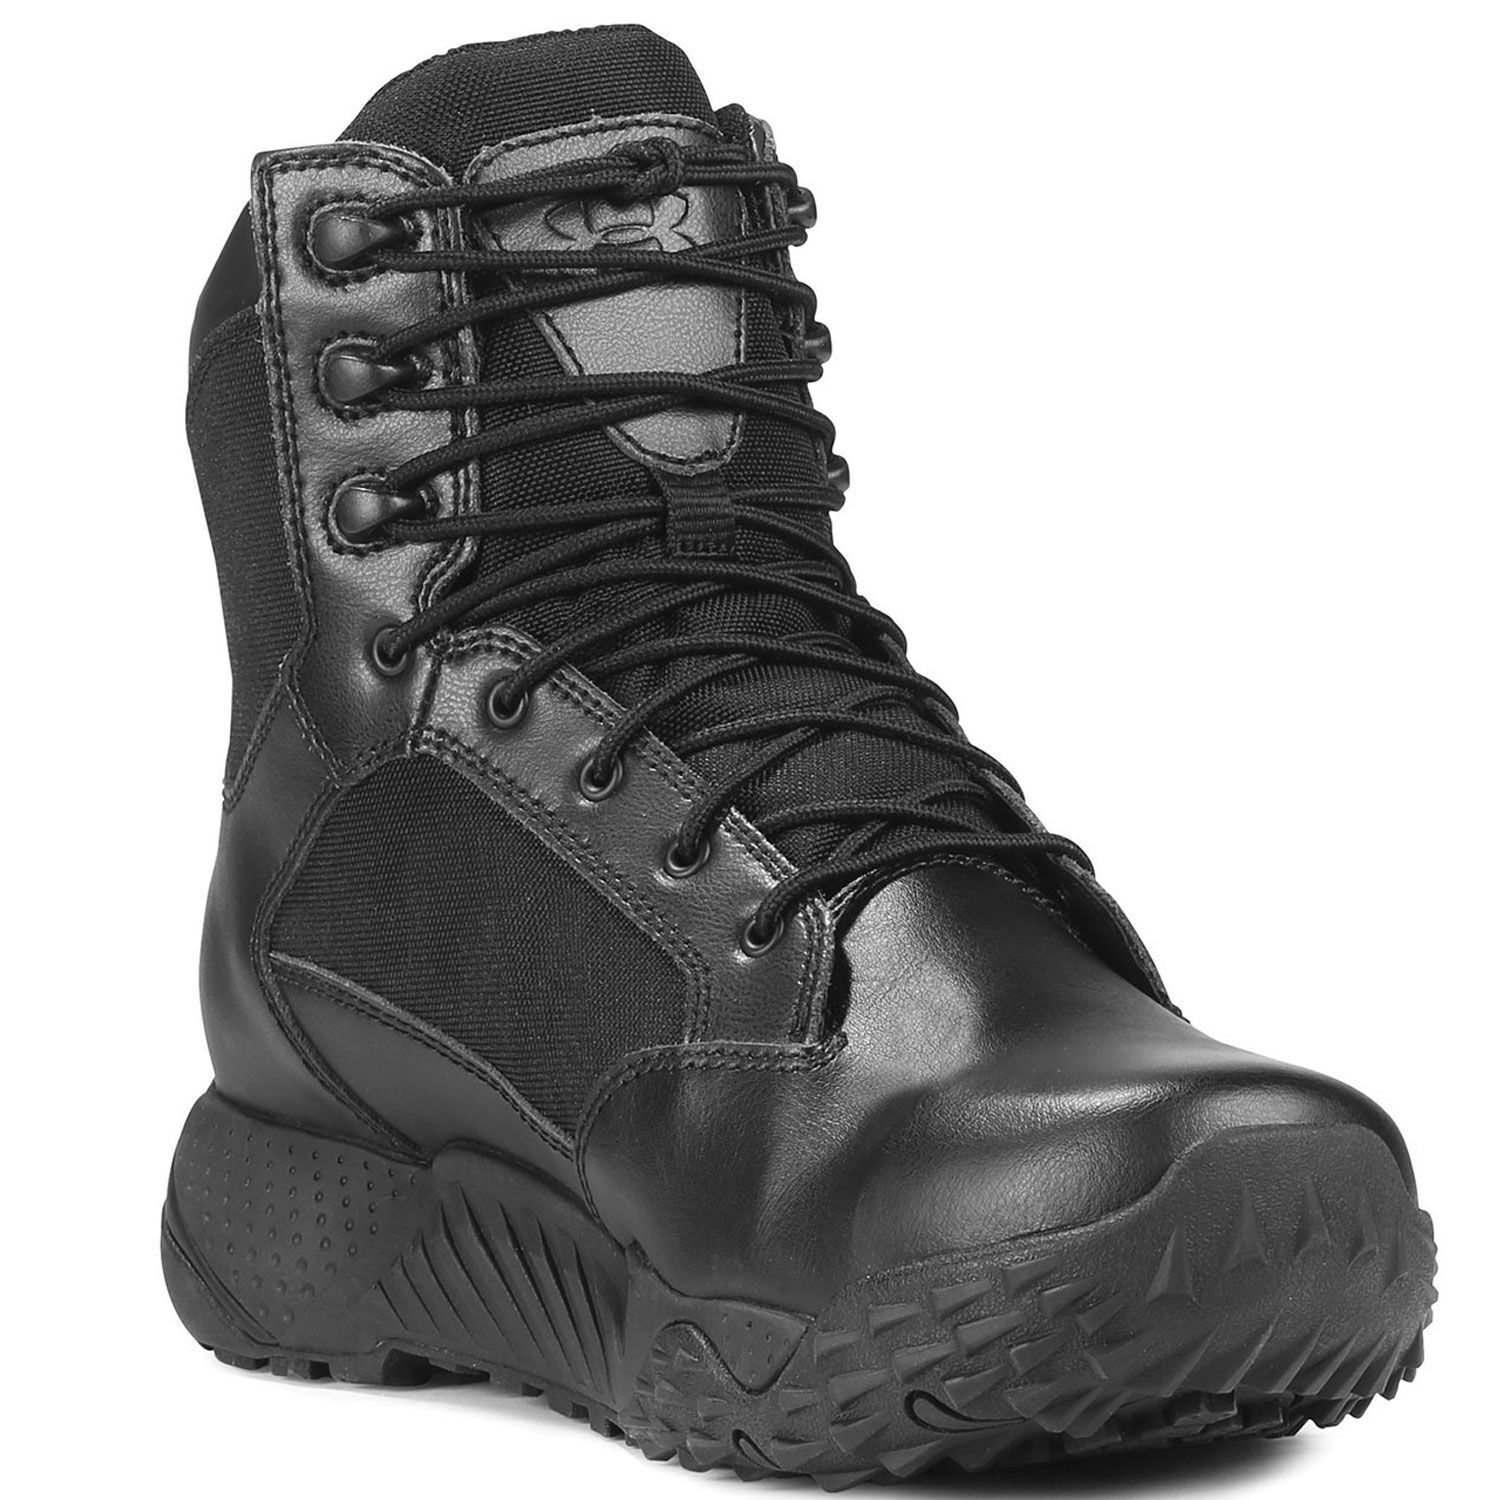 Under Armour Men's Stellar Protect Tactical Boot 9.5 Black